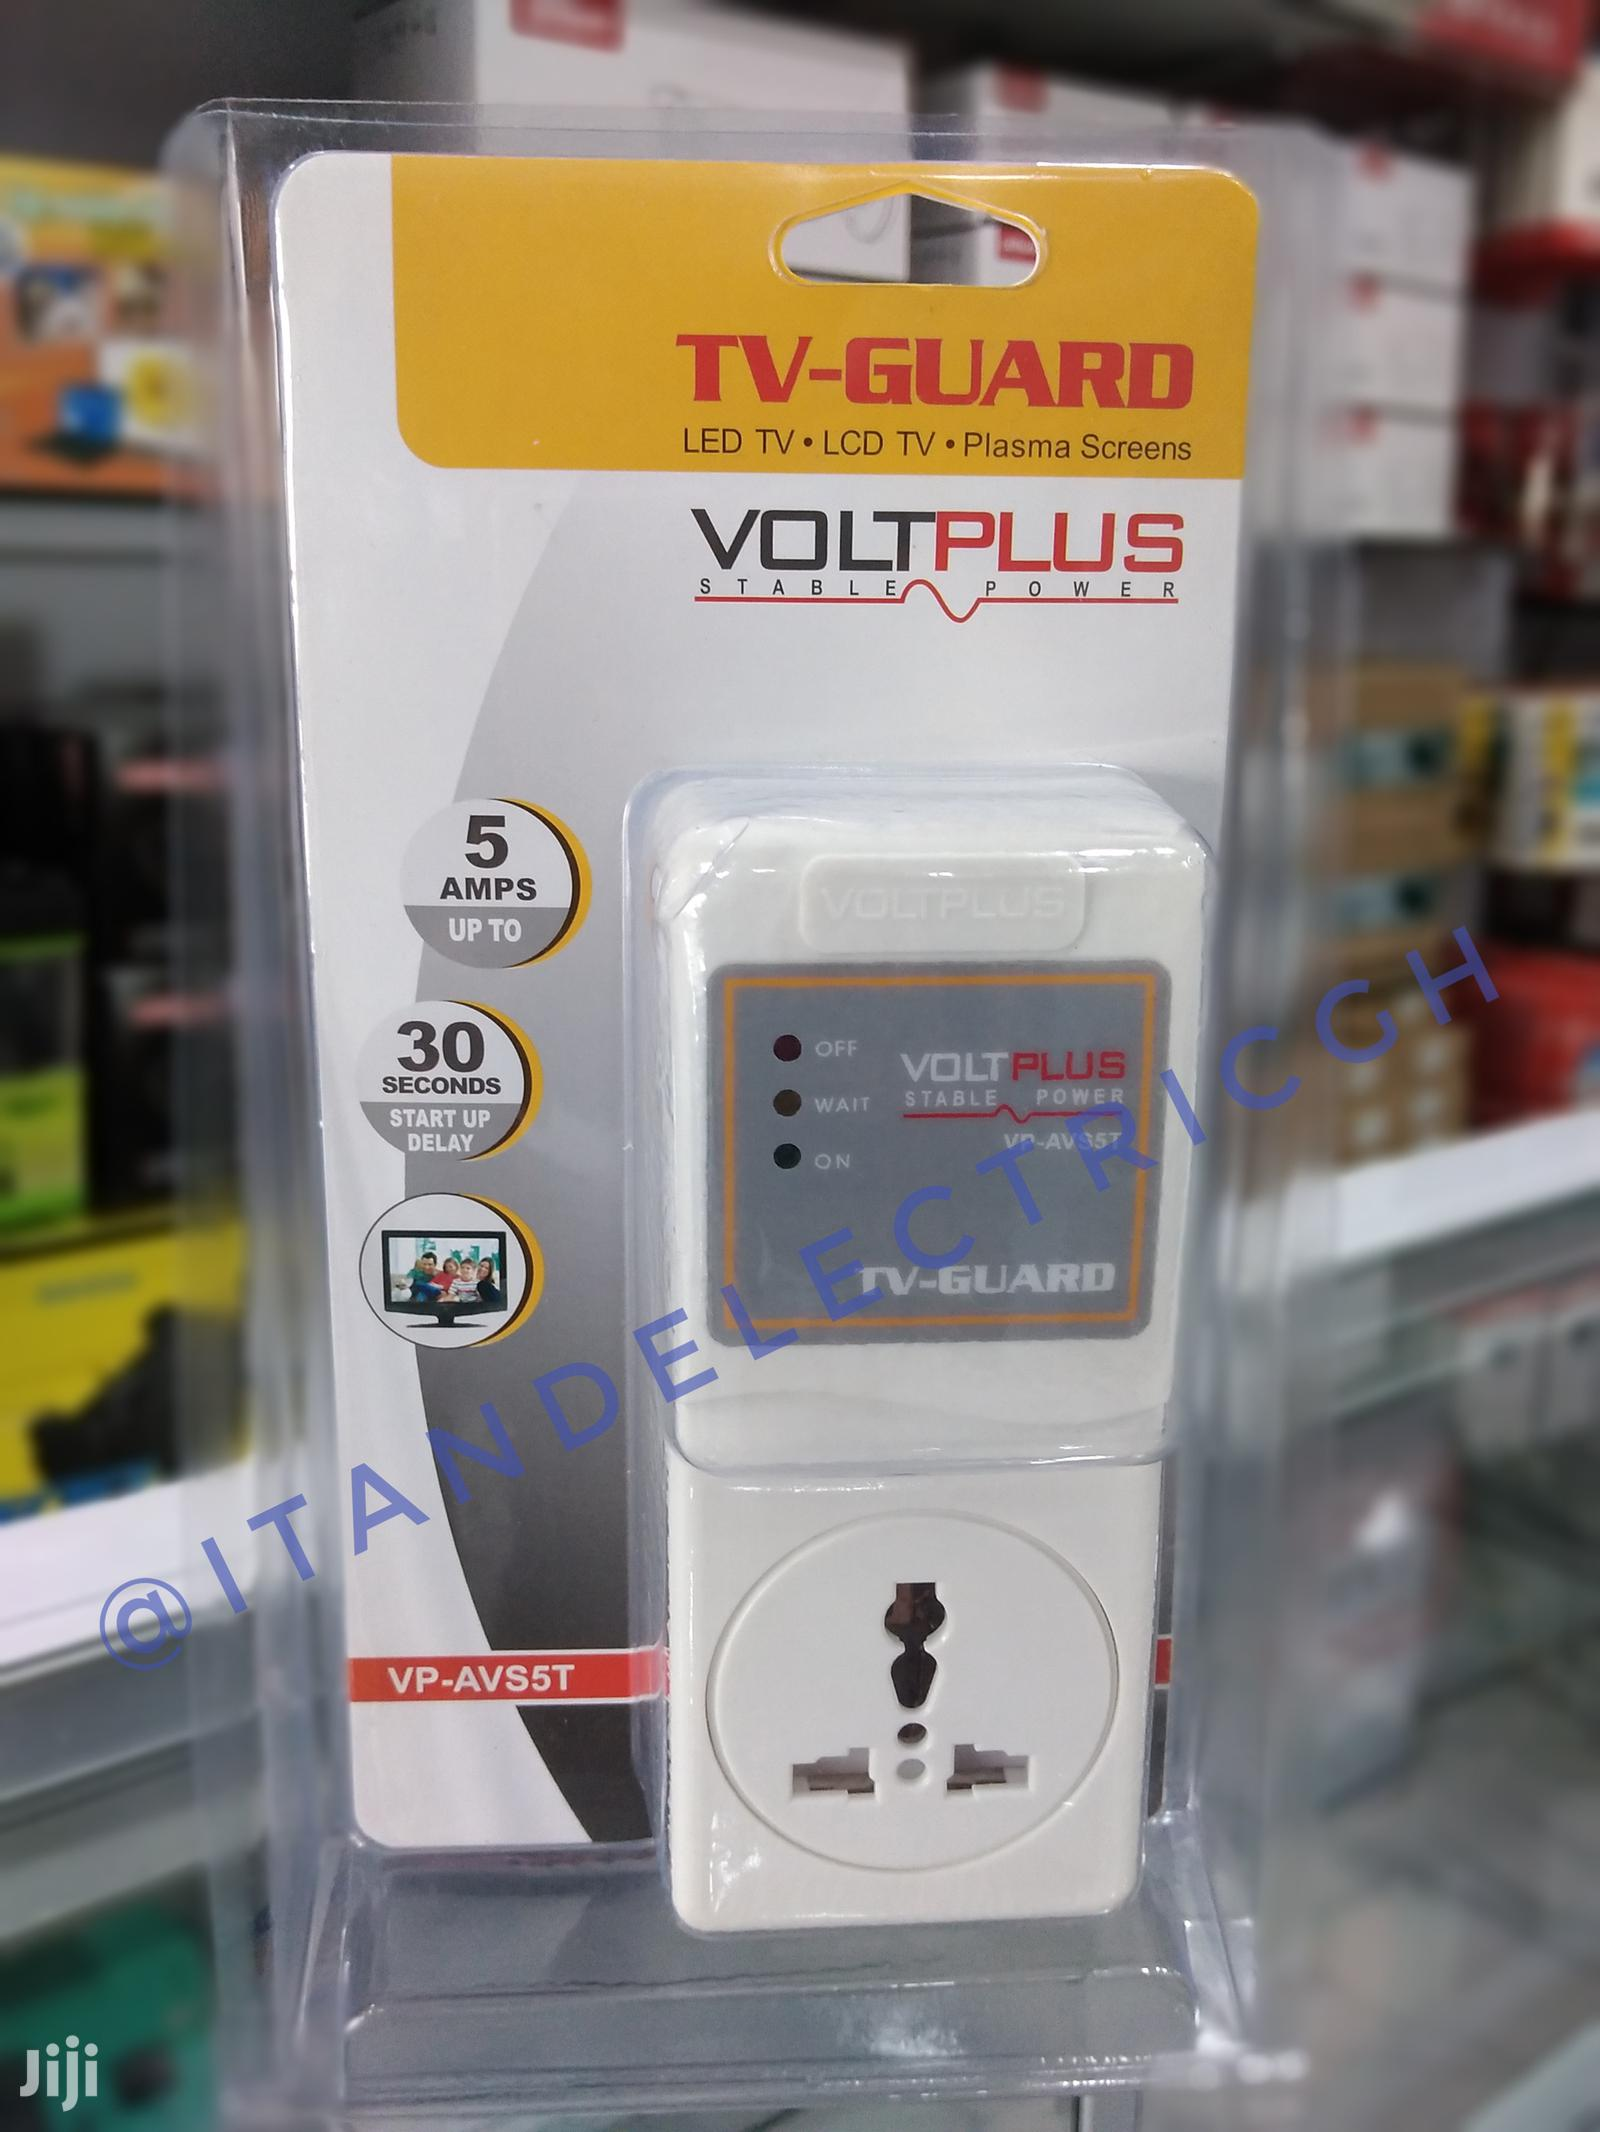 Voltplus TV Guard